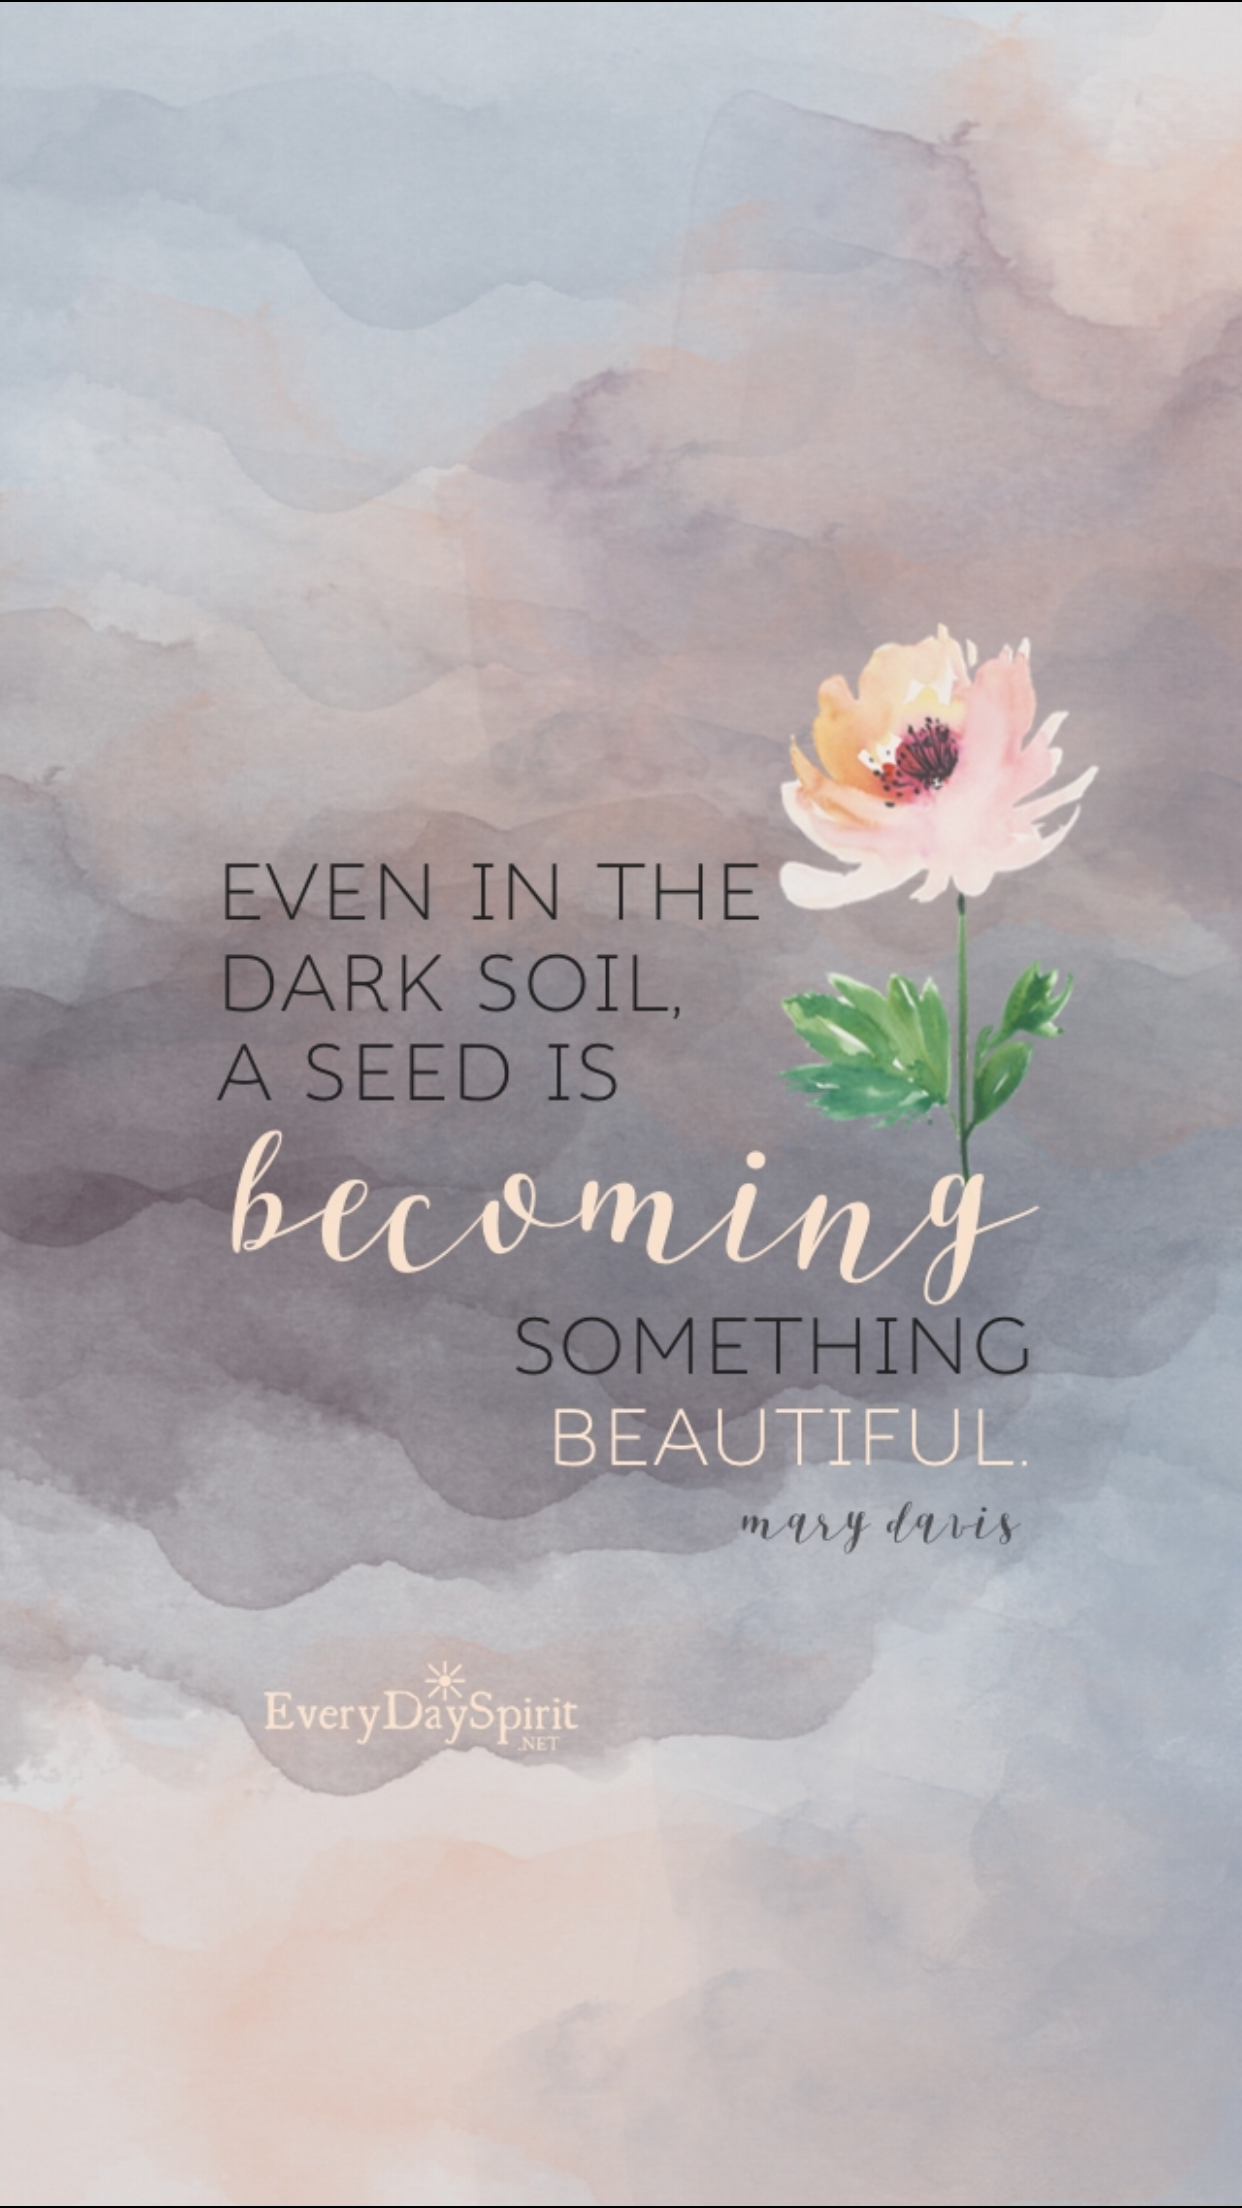 Inspiring Bible Verses Wallpapers Posted By Zoey Cunningham